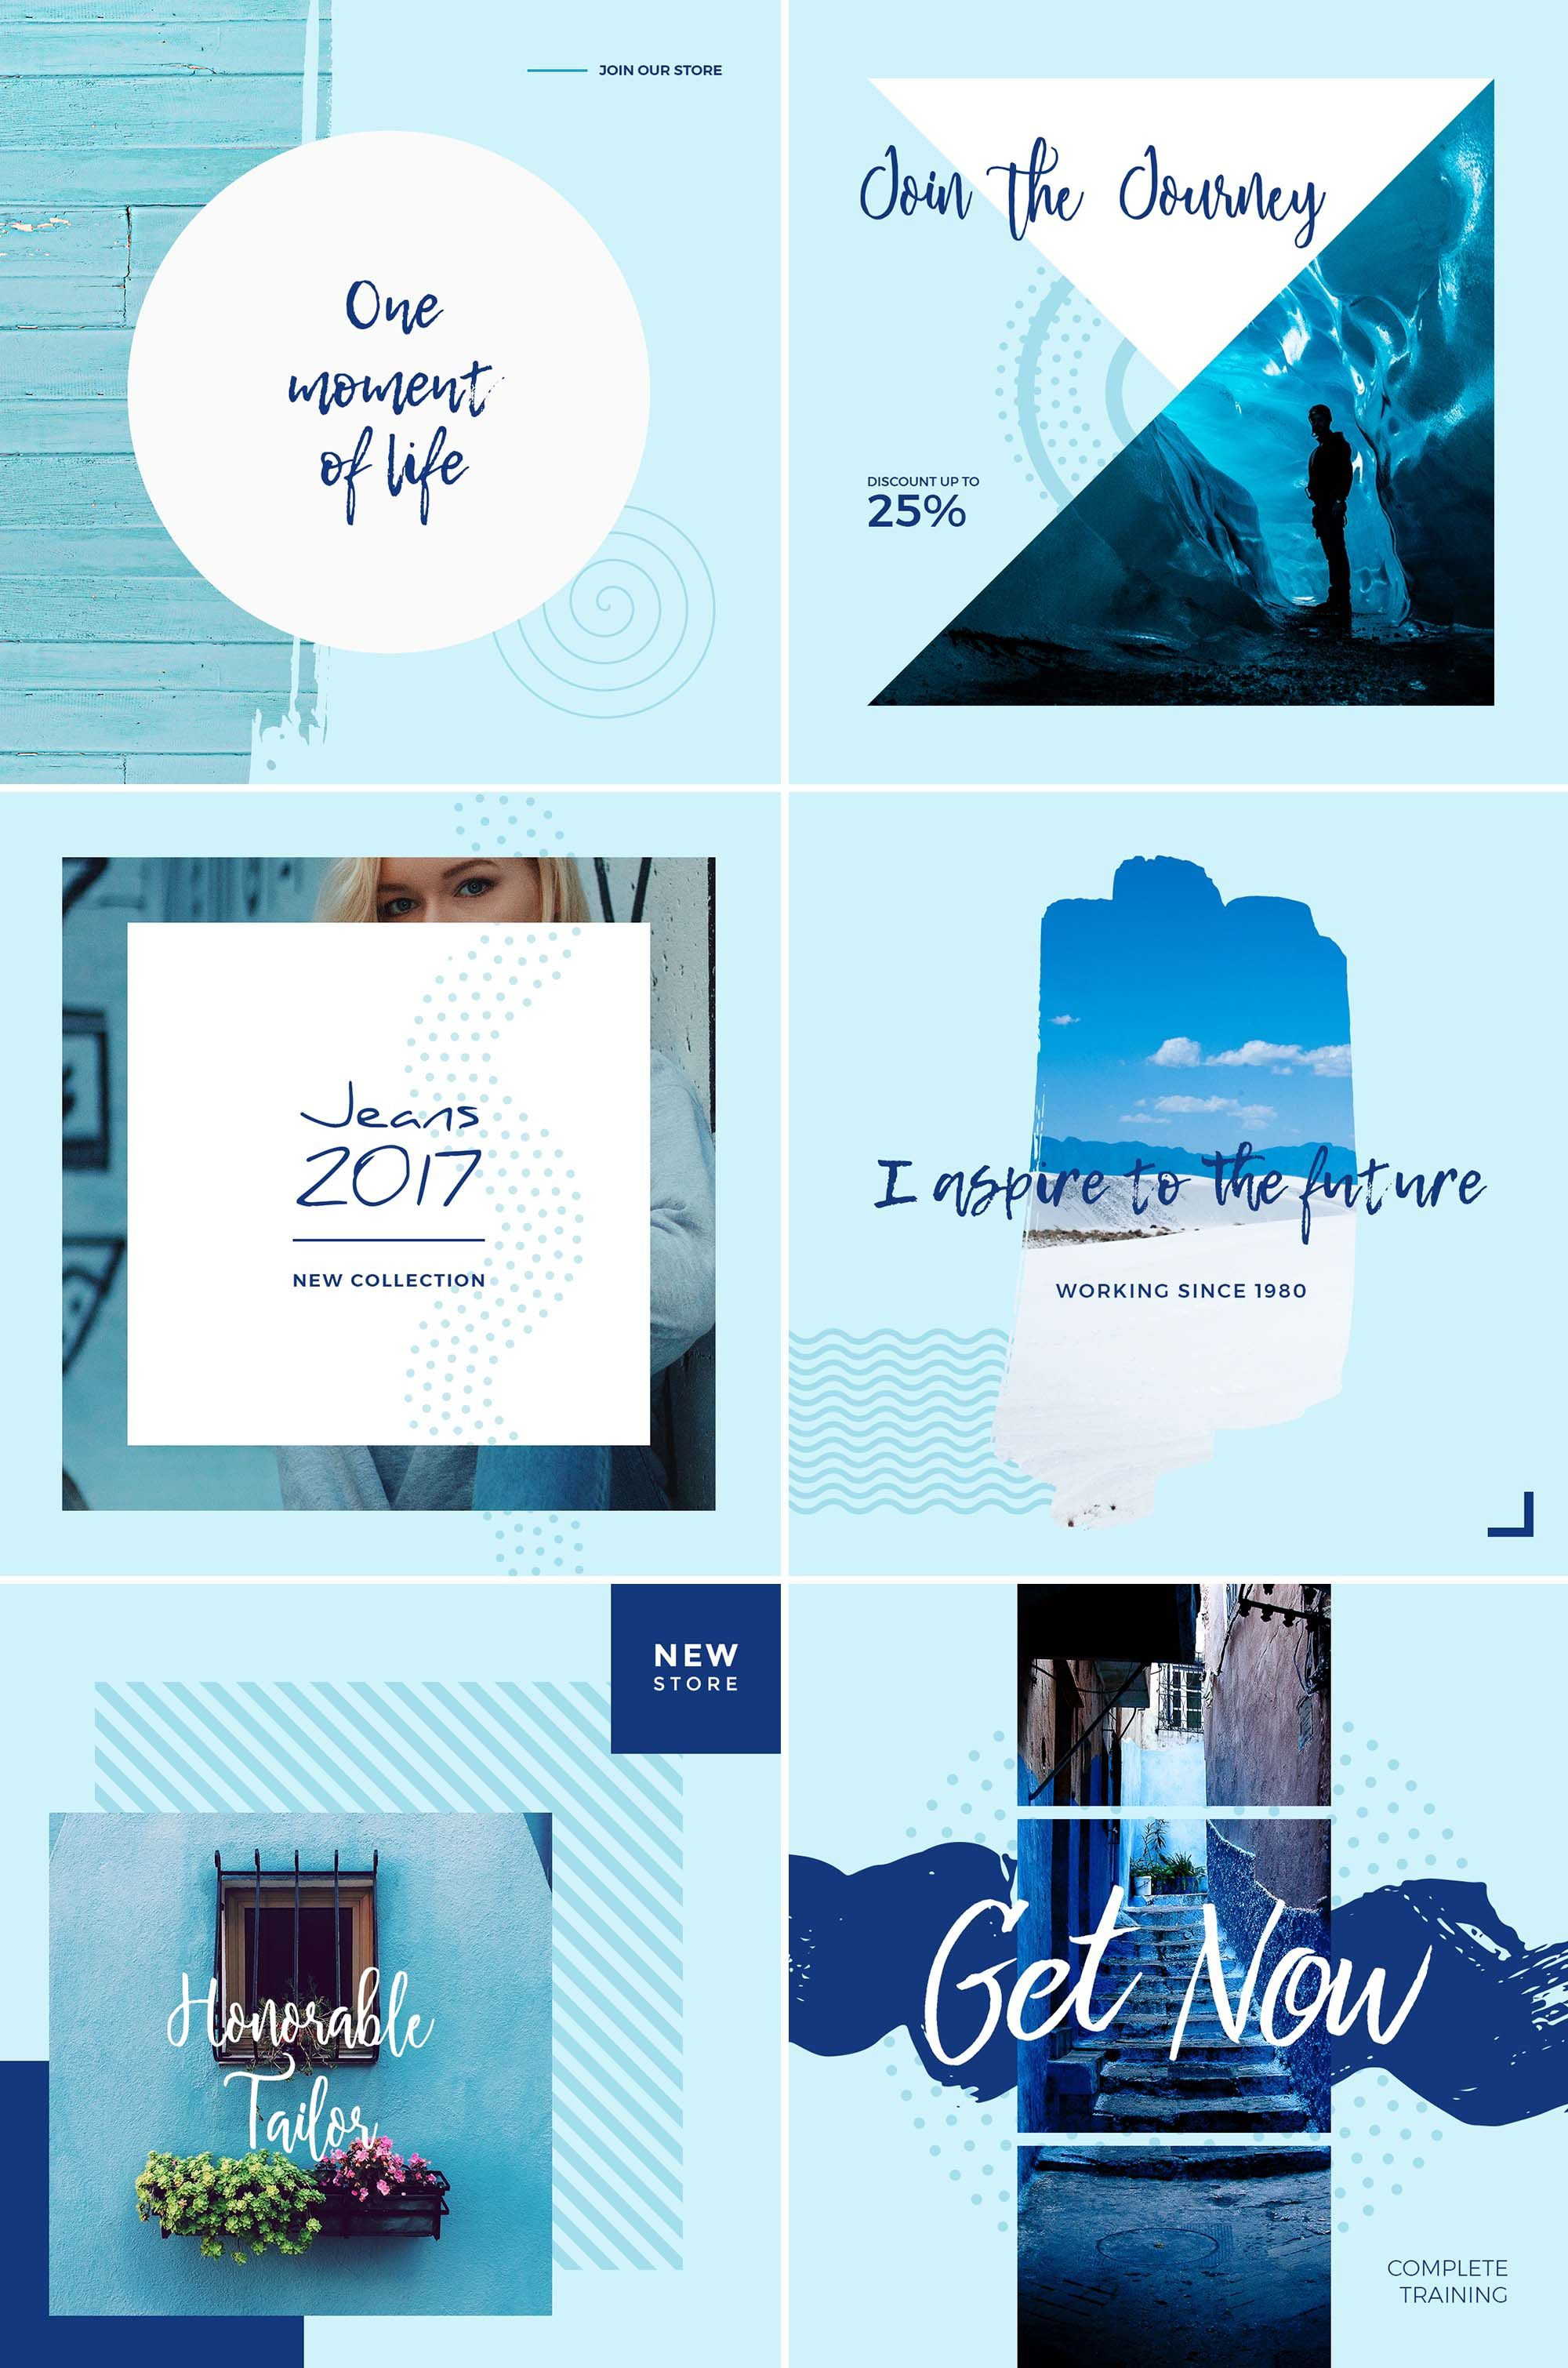 008 Fascinating Free Social Media Template Design  Templates Website Post Download For PowerpointFull